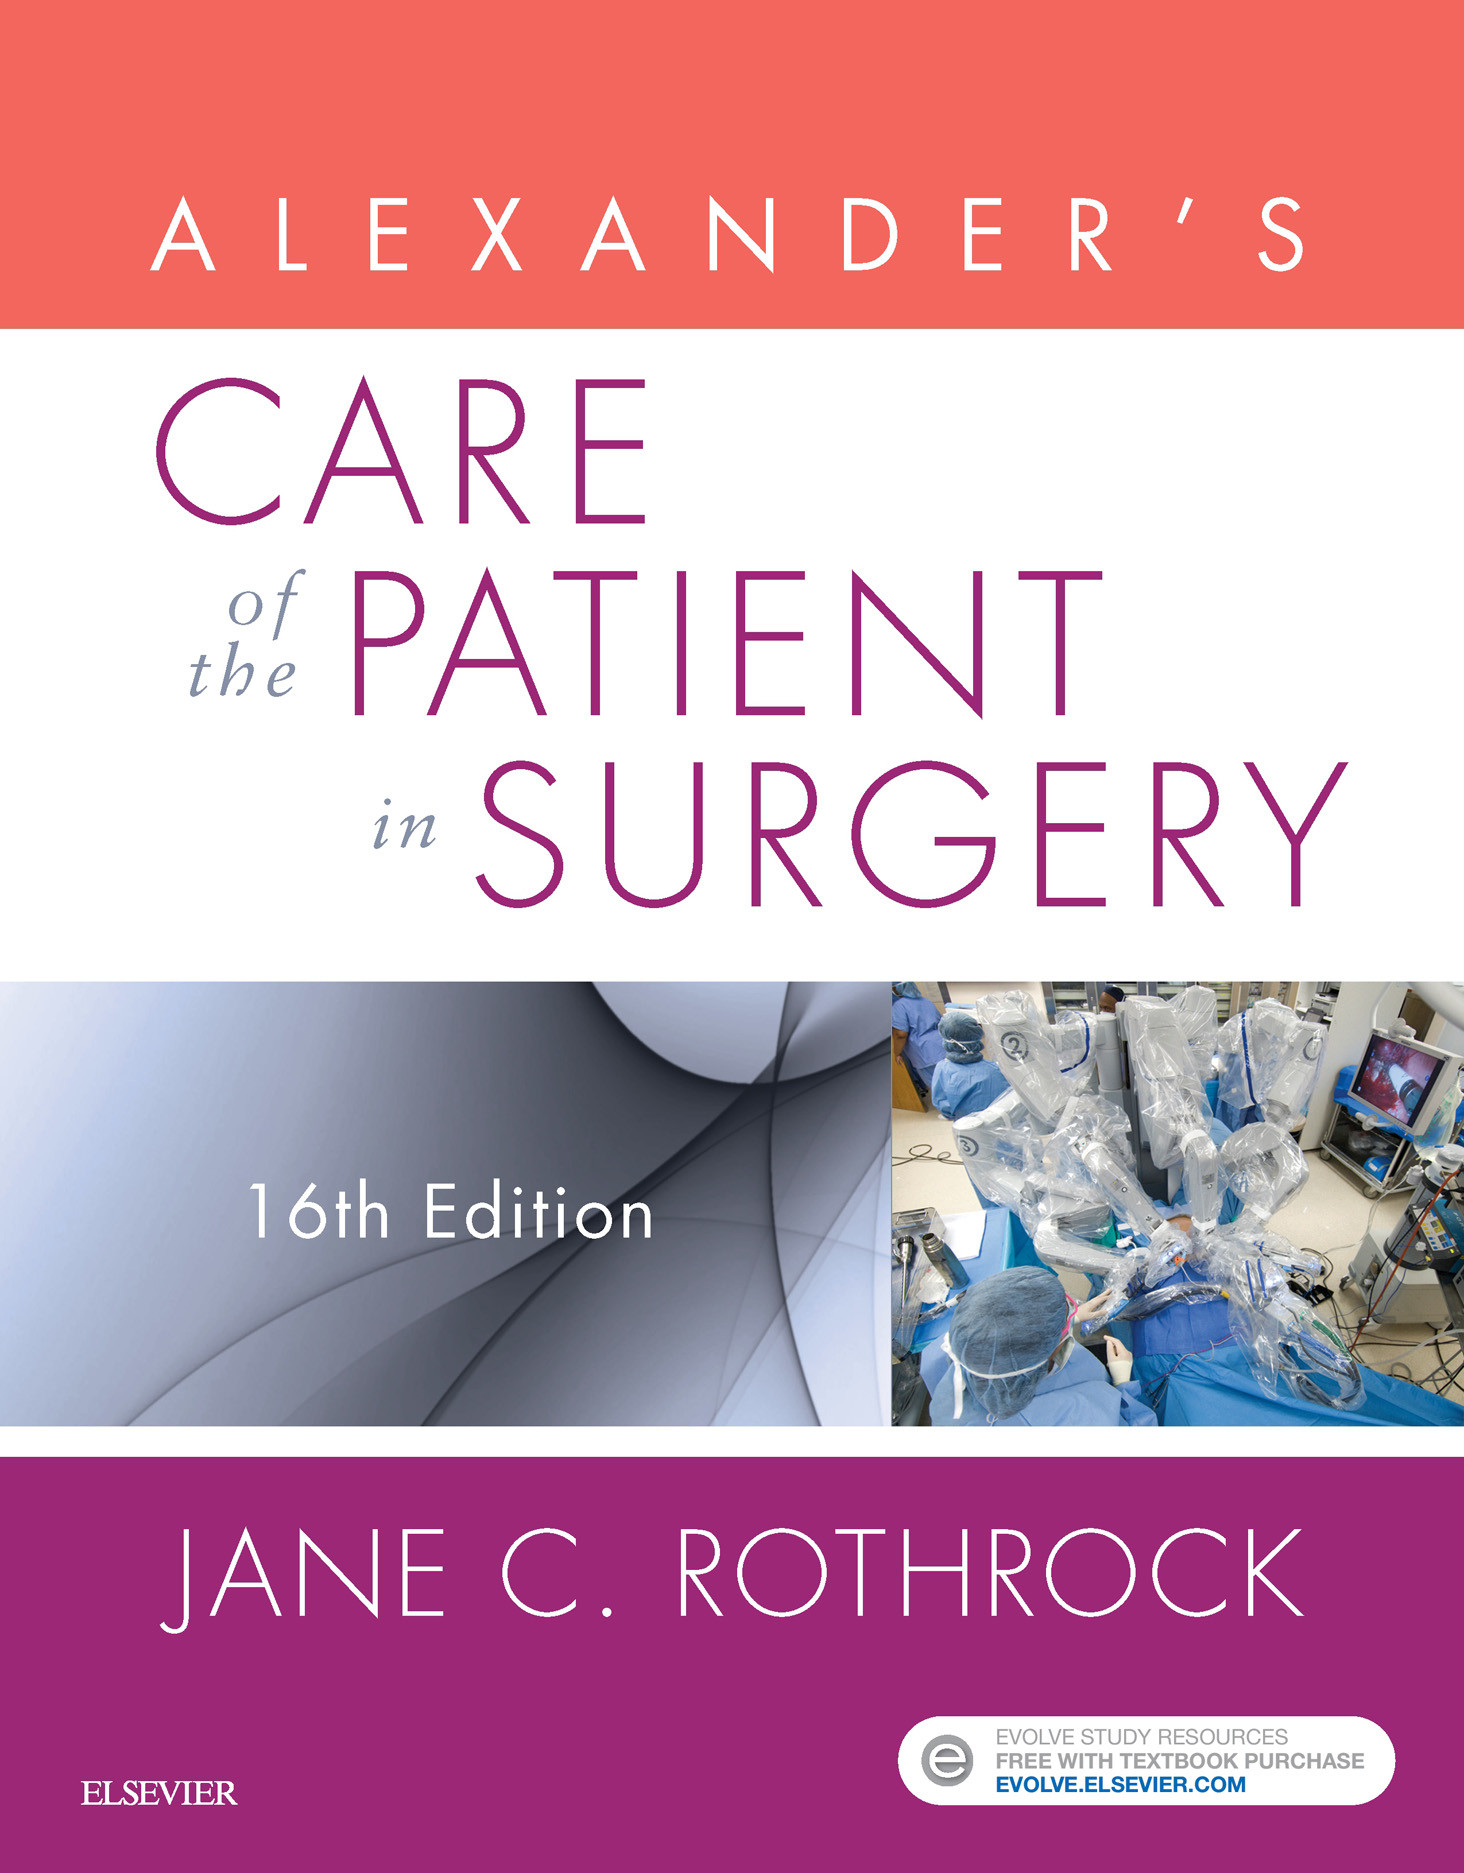 Alexander's Care of the Patient in Surgery - E-Book